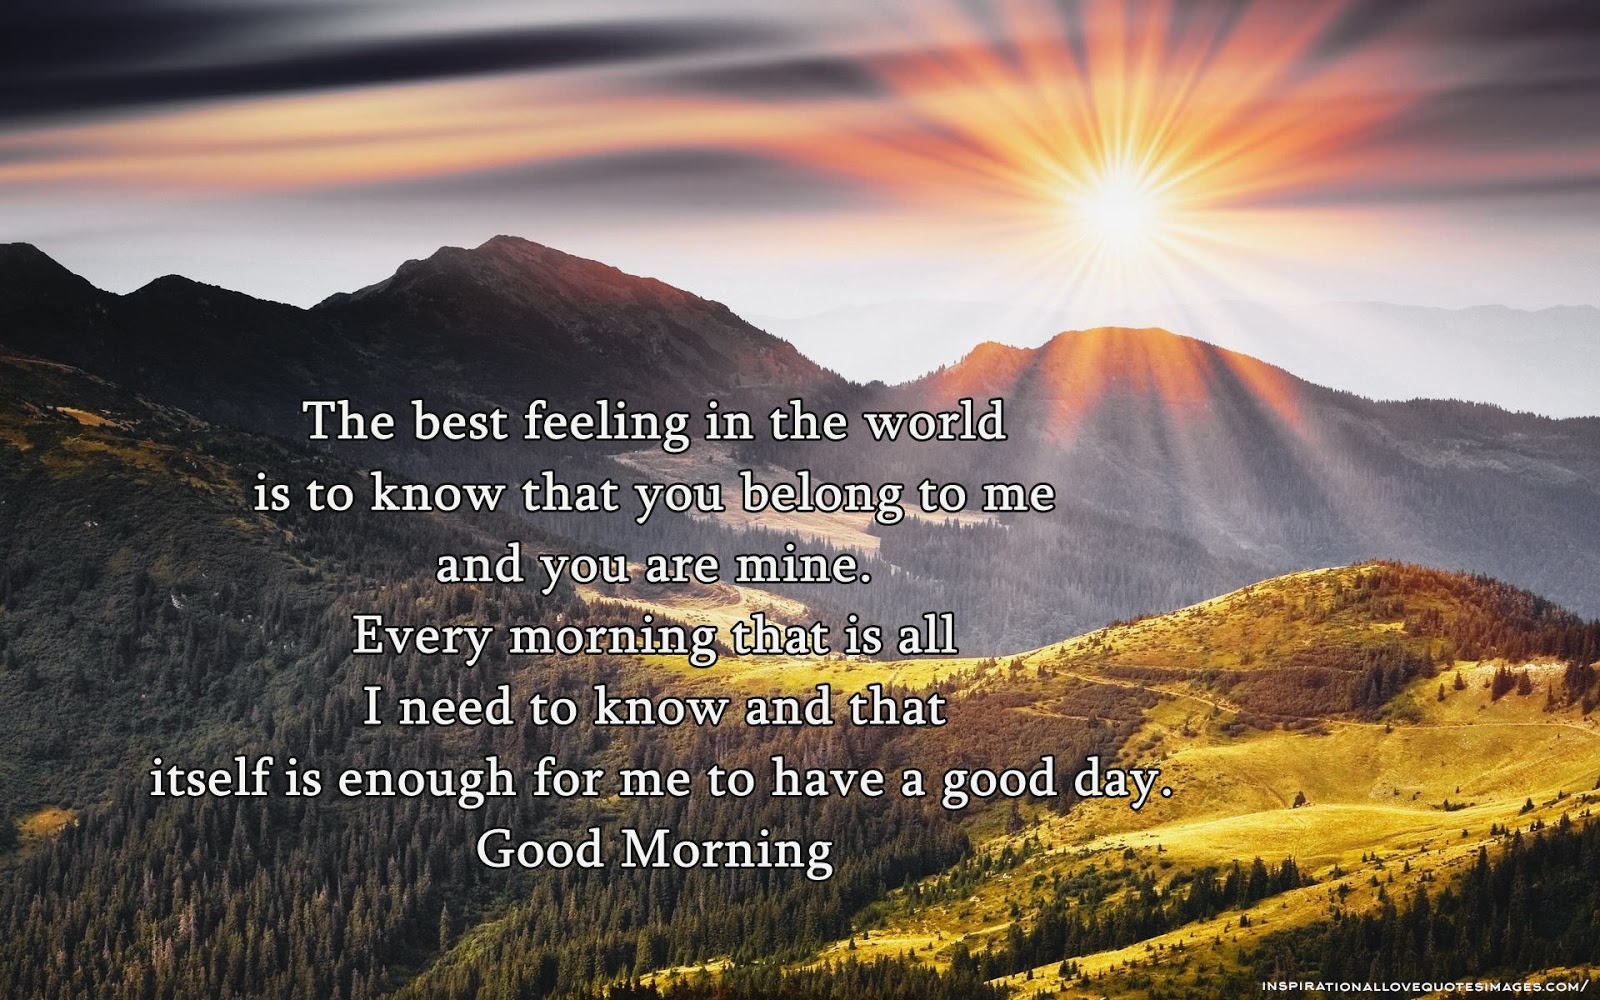 Good Morning Quotes For Him Quotesgram: Love Quotes For Her Morning. QuotesGram